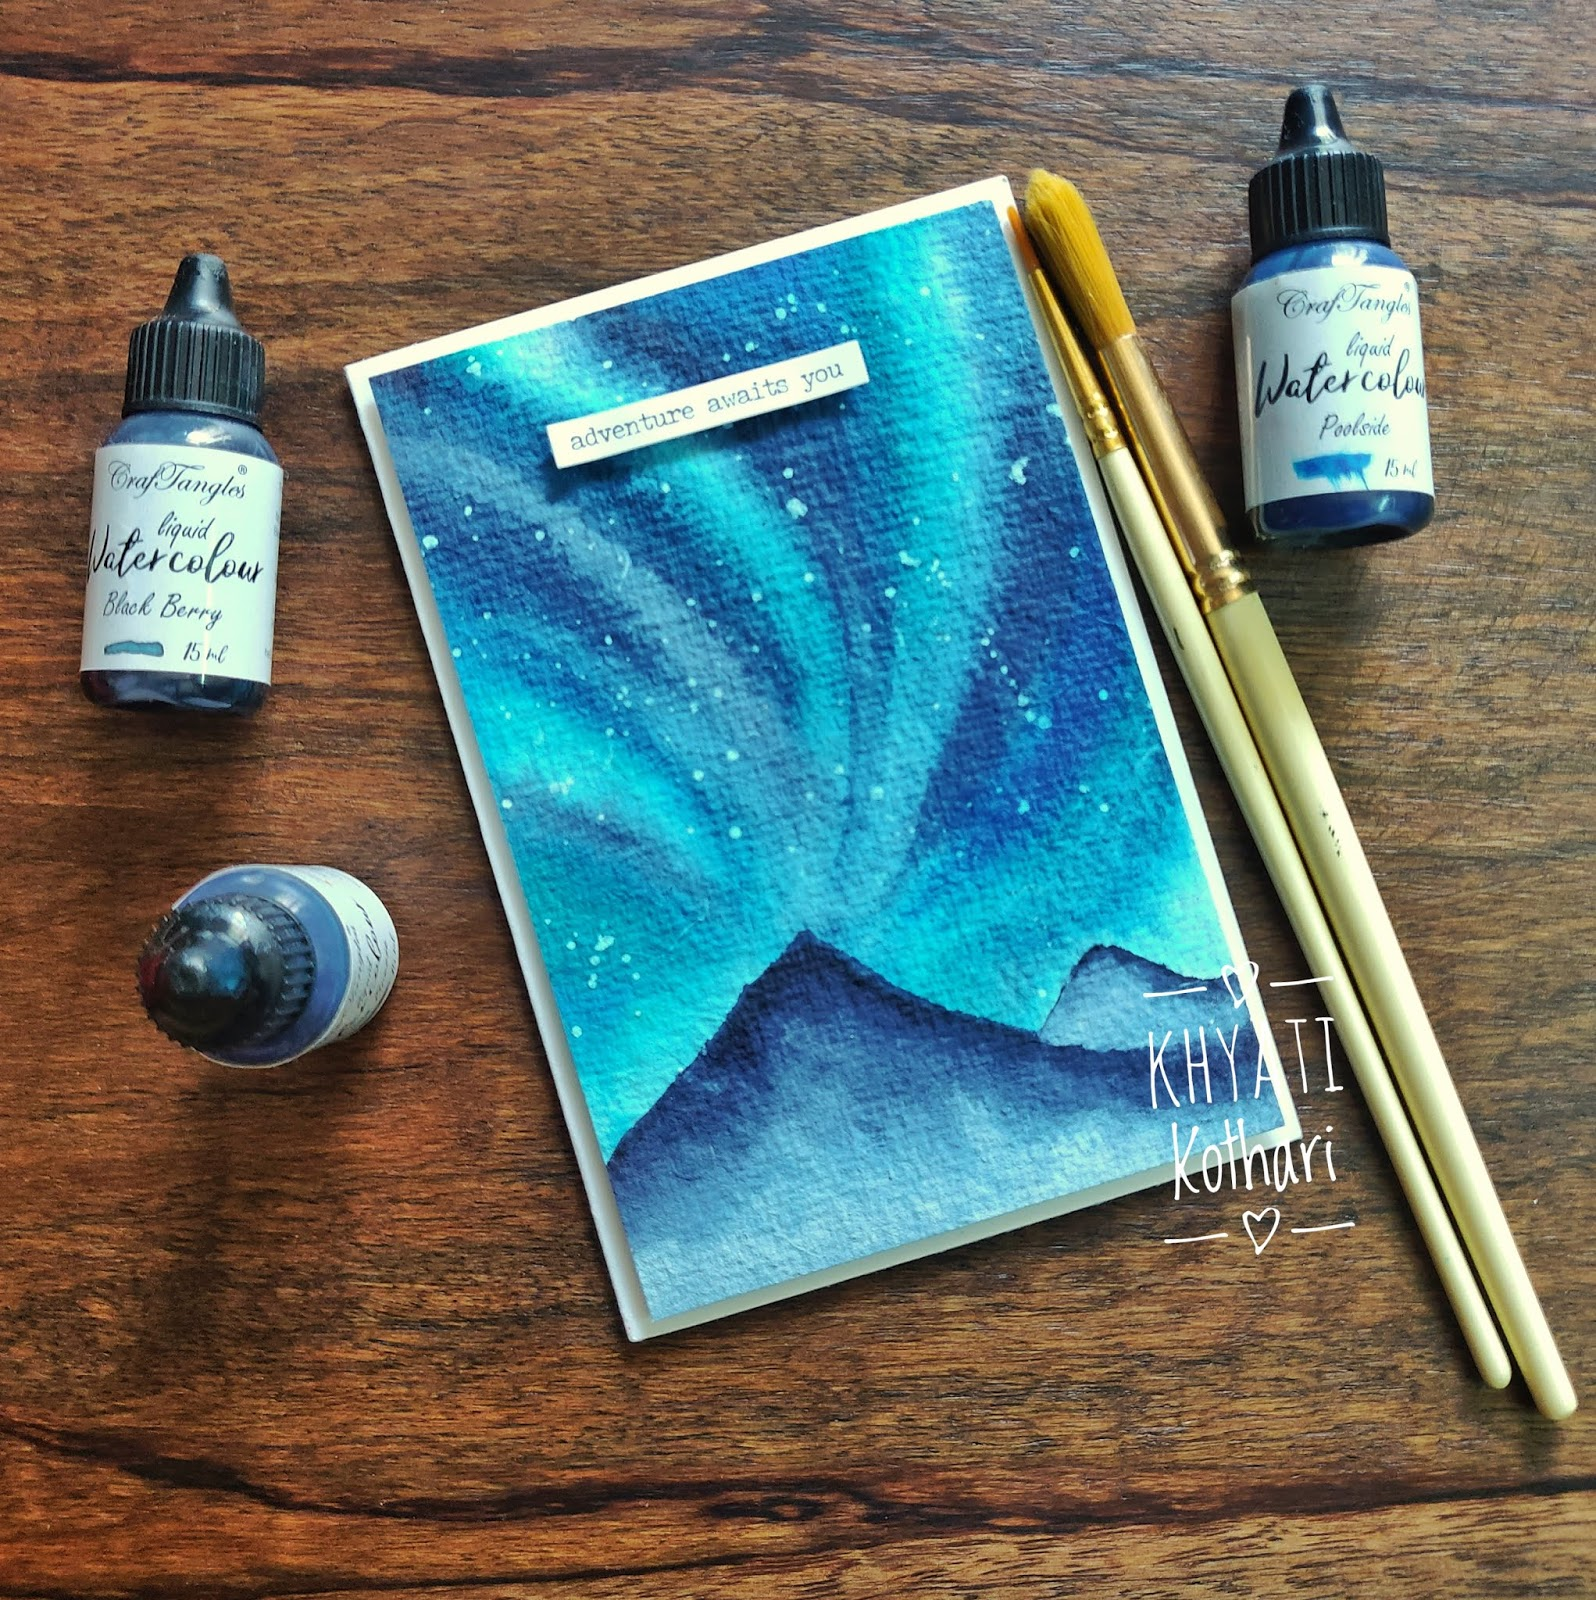 CrafTangles April Challenege inspirations by Khyati using liquid watercolors 3